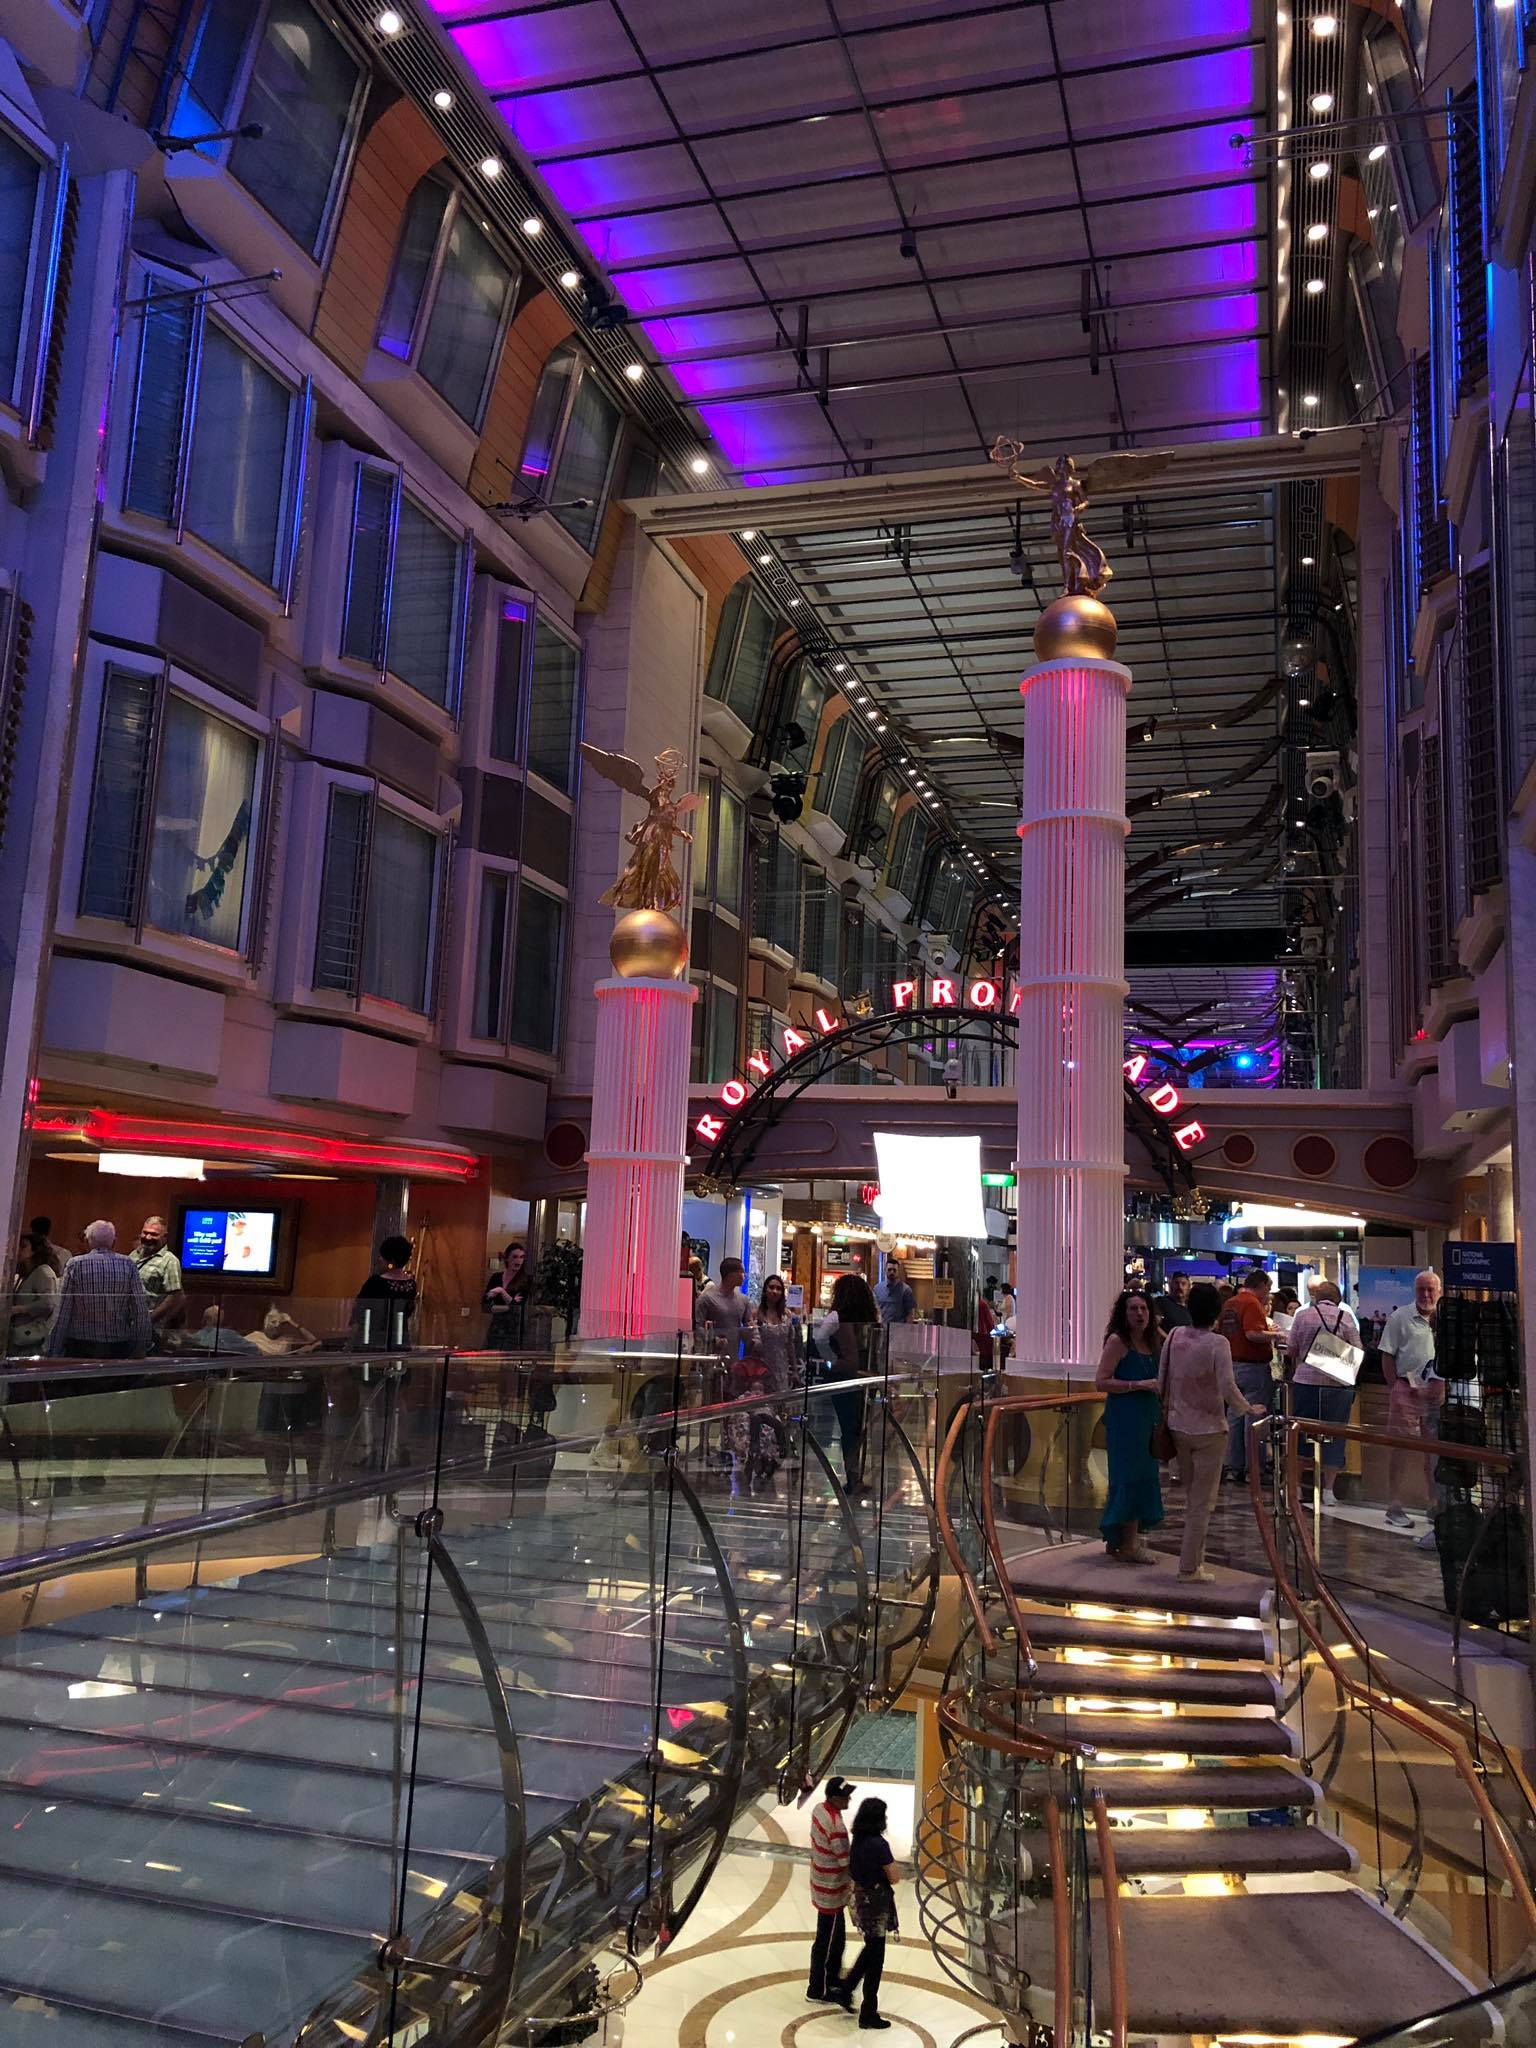 Kach Solo Travels in 2019  7-day Eastern & Southern Caribbean cruise with Royal Caribbean 8.jpg